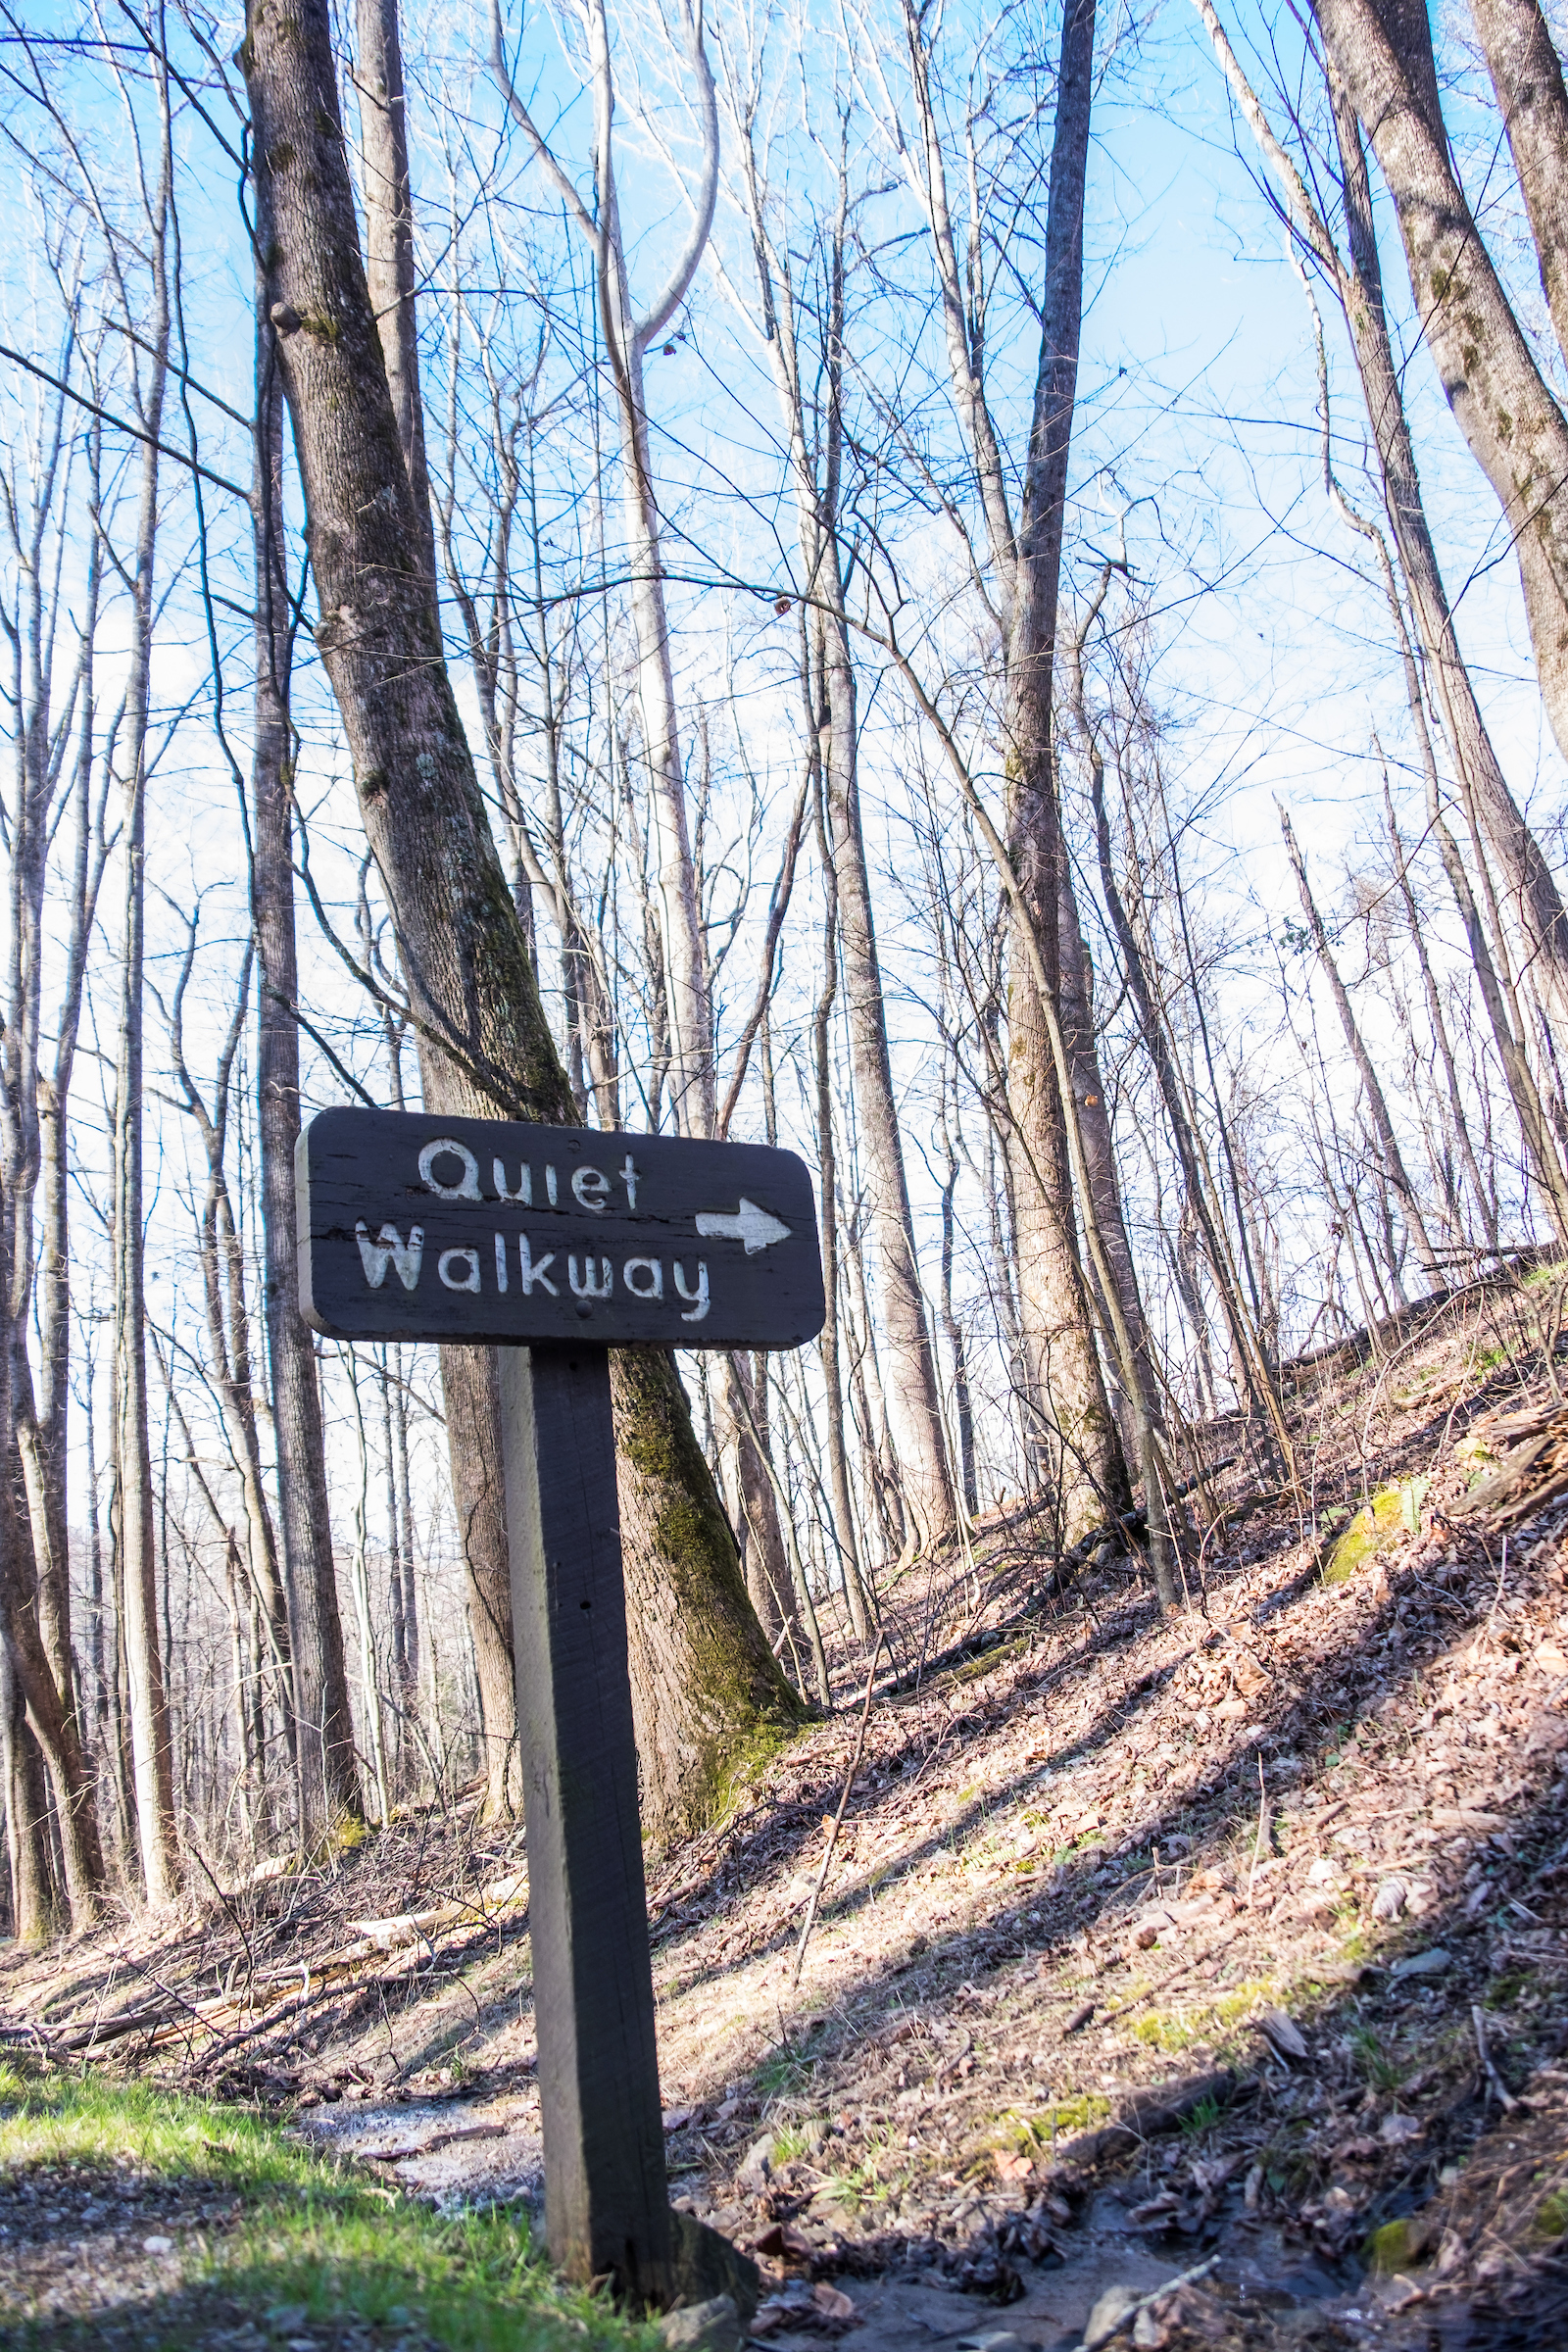 20160206-SP-Great Smoky Mountains-1050-_DSF1605.jpg